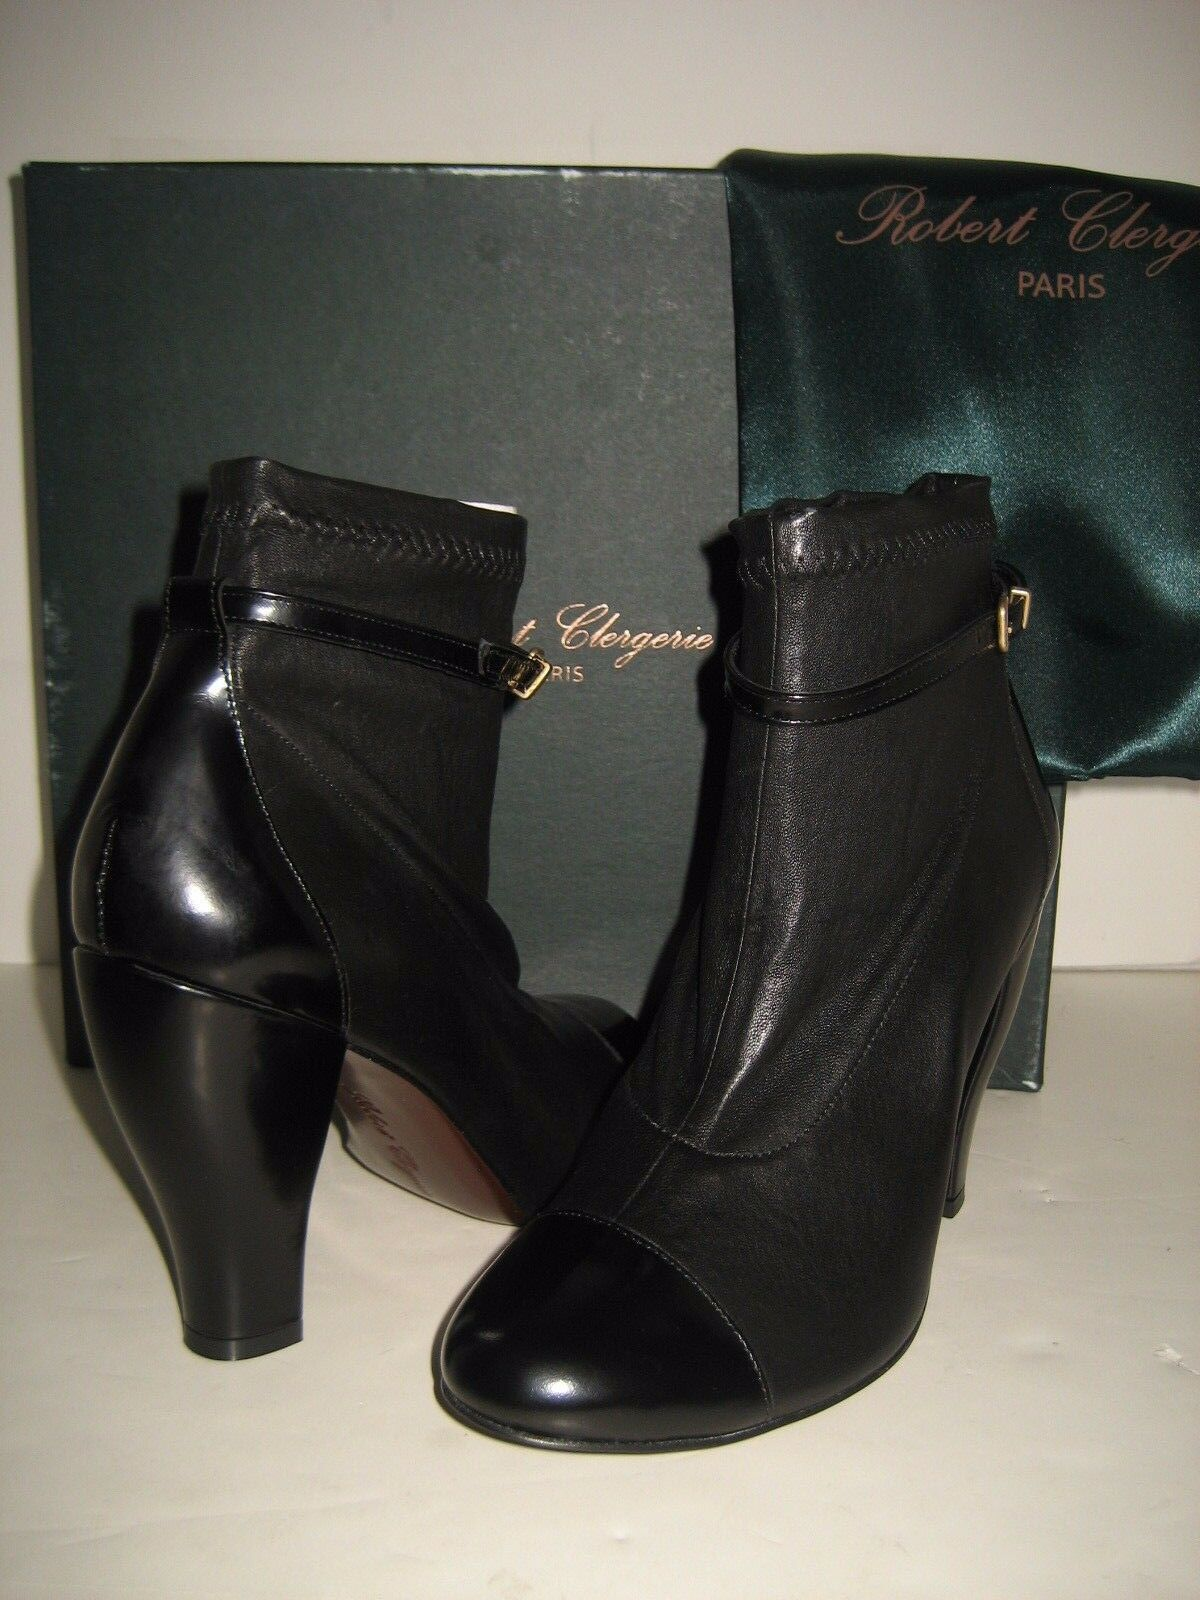 785 NEW Robert Clergerie Paris Mane US 8 Black Leather Heel Ankle Booties Boots